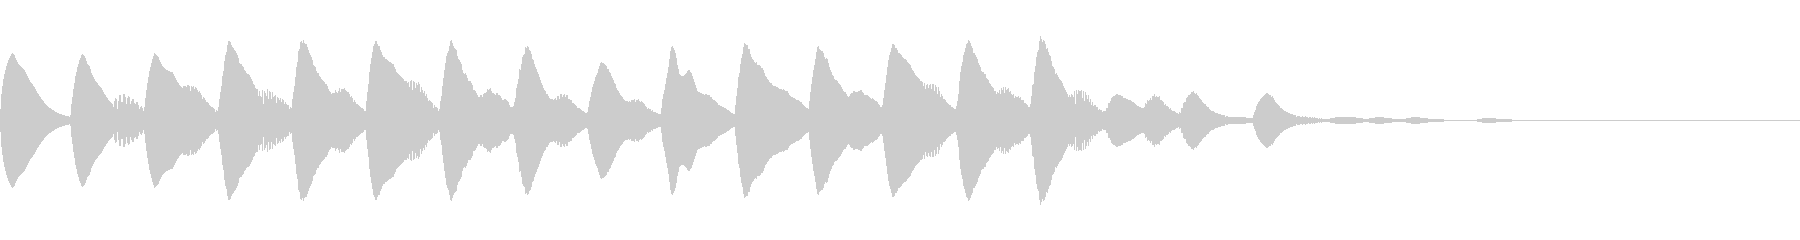 SE01-2 with the sound of flying butterflies's unreproduced waveform